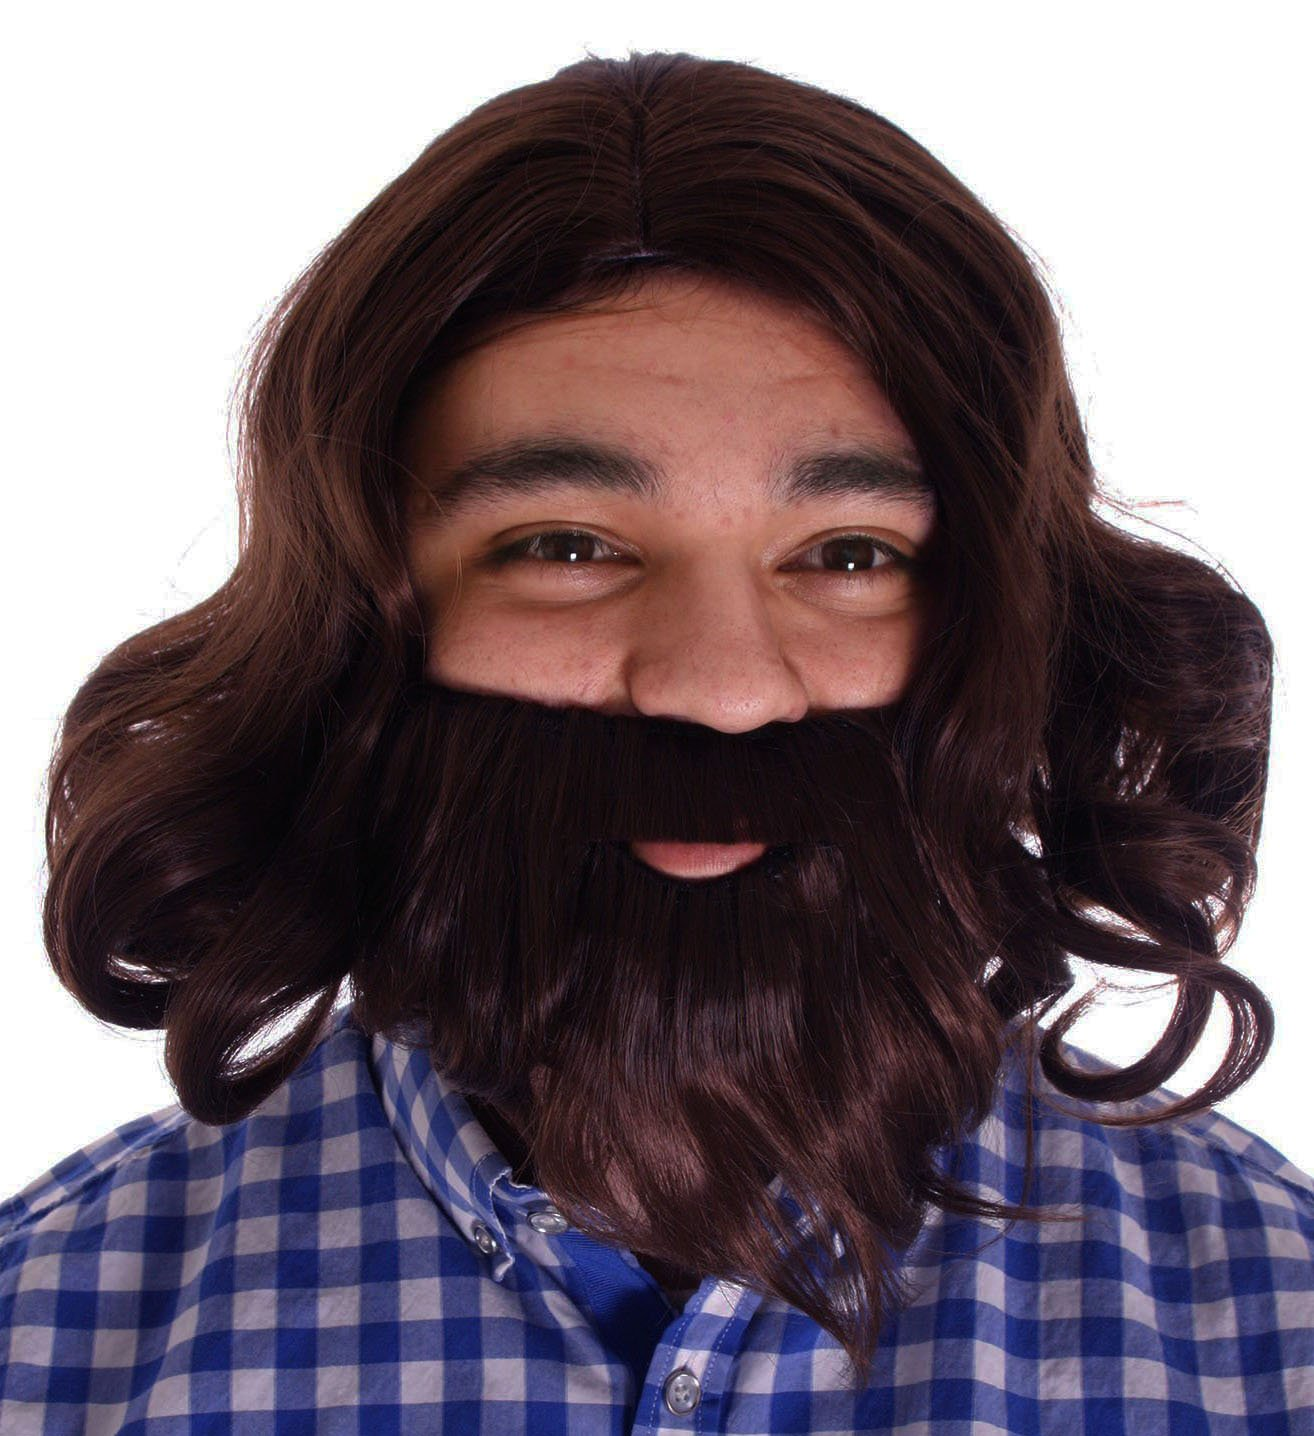 Lullaby Mens Wavy Beard Set Jesus Wigs Costume Cosplay Full Wig Free Wig Cap by Lullaby